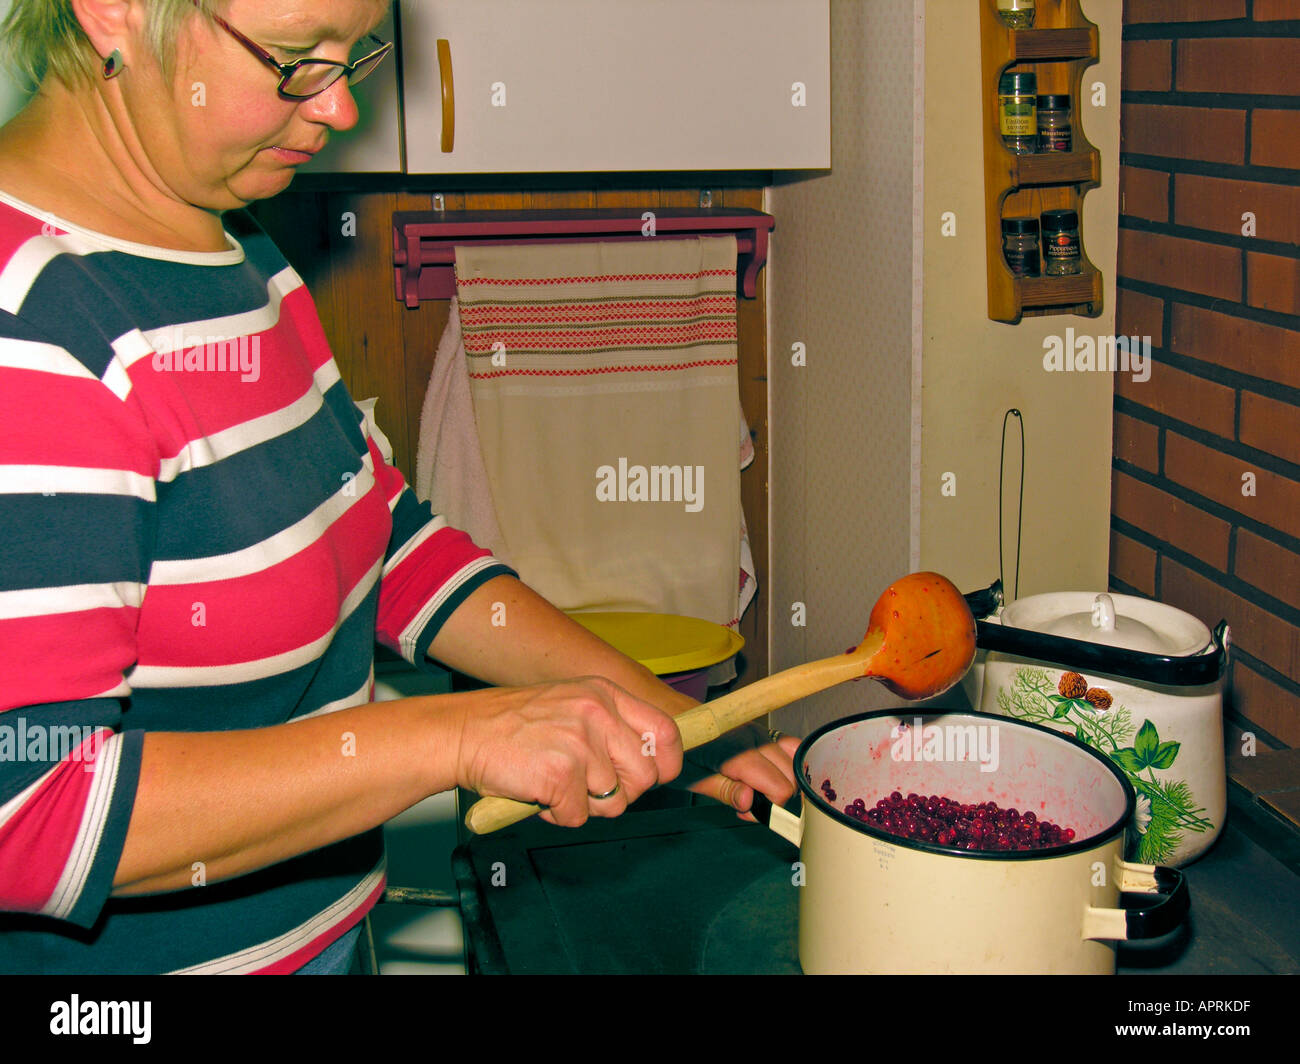 MR PR woman making jam on an old wood fired oven in an old kitchen - Stock Image